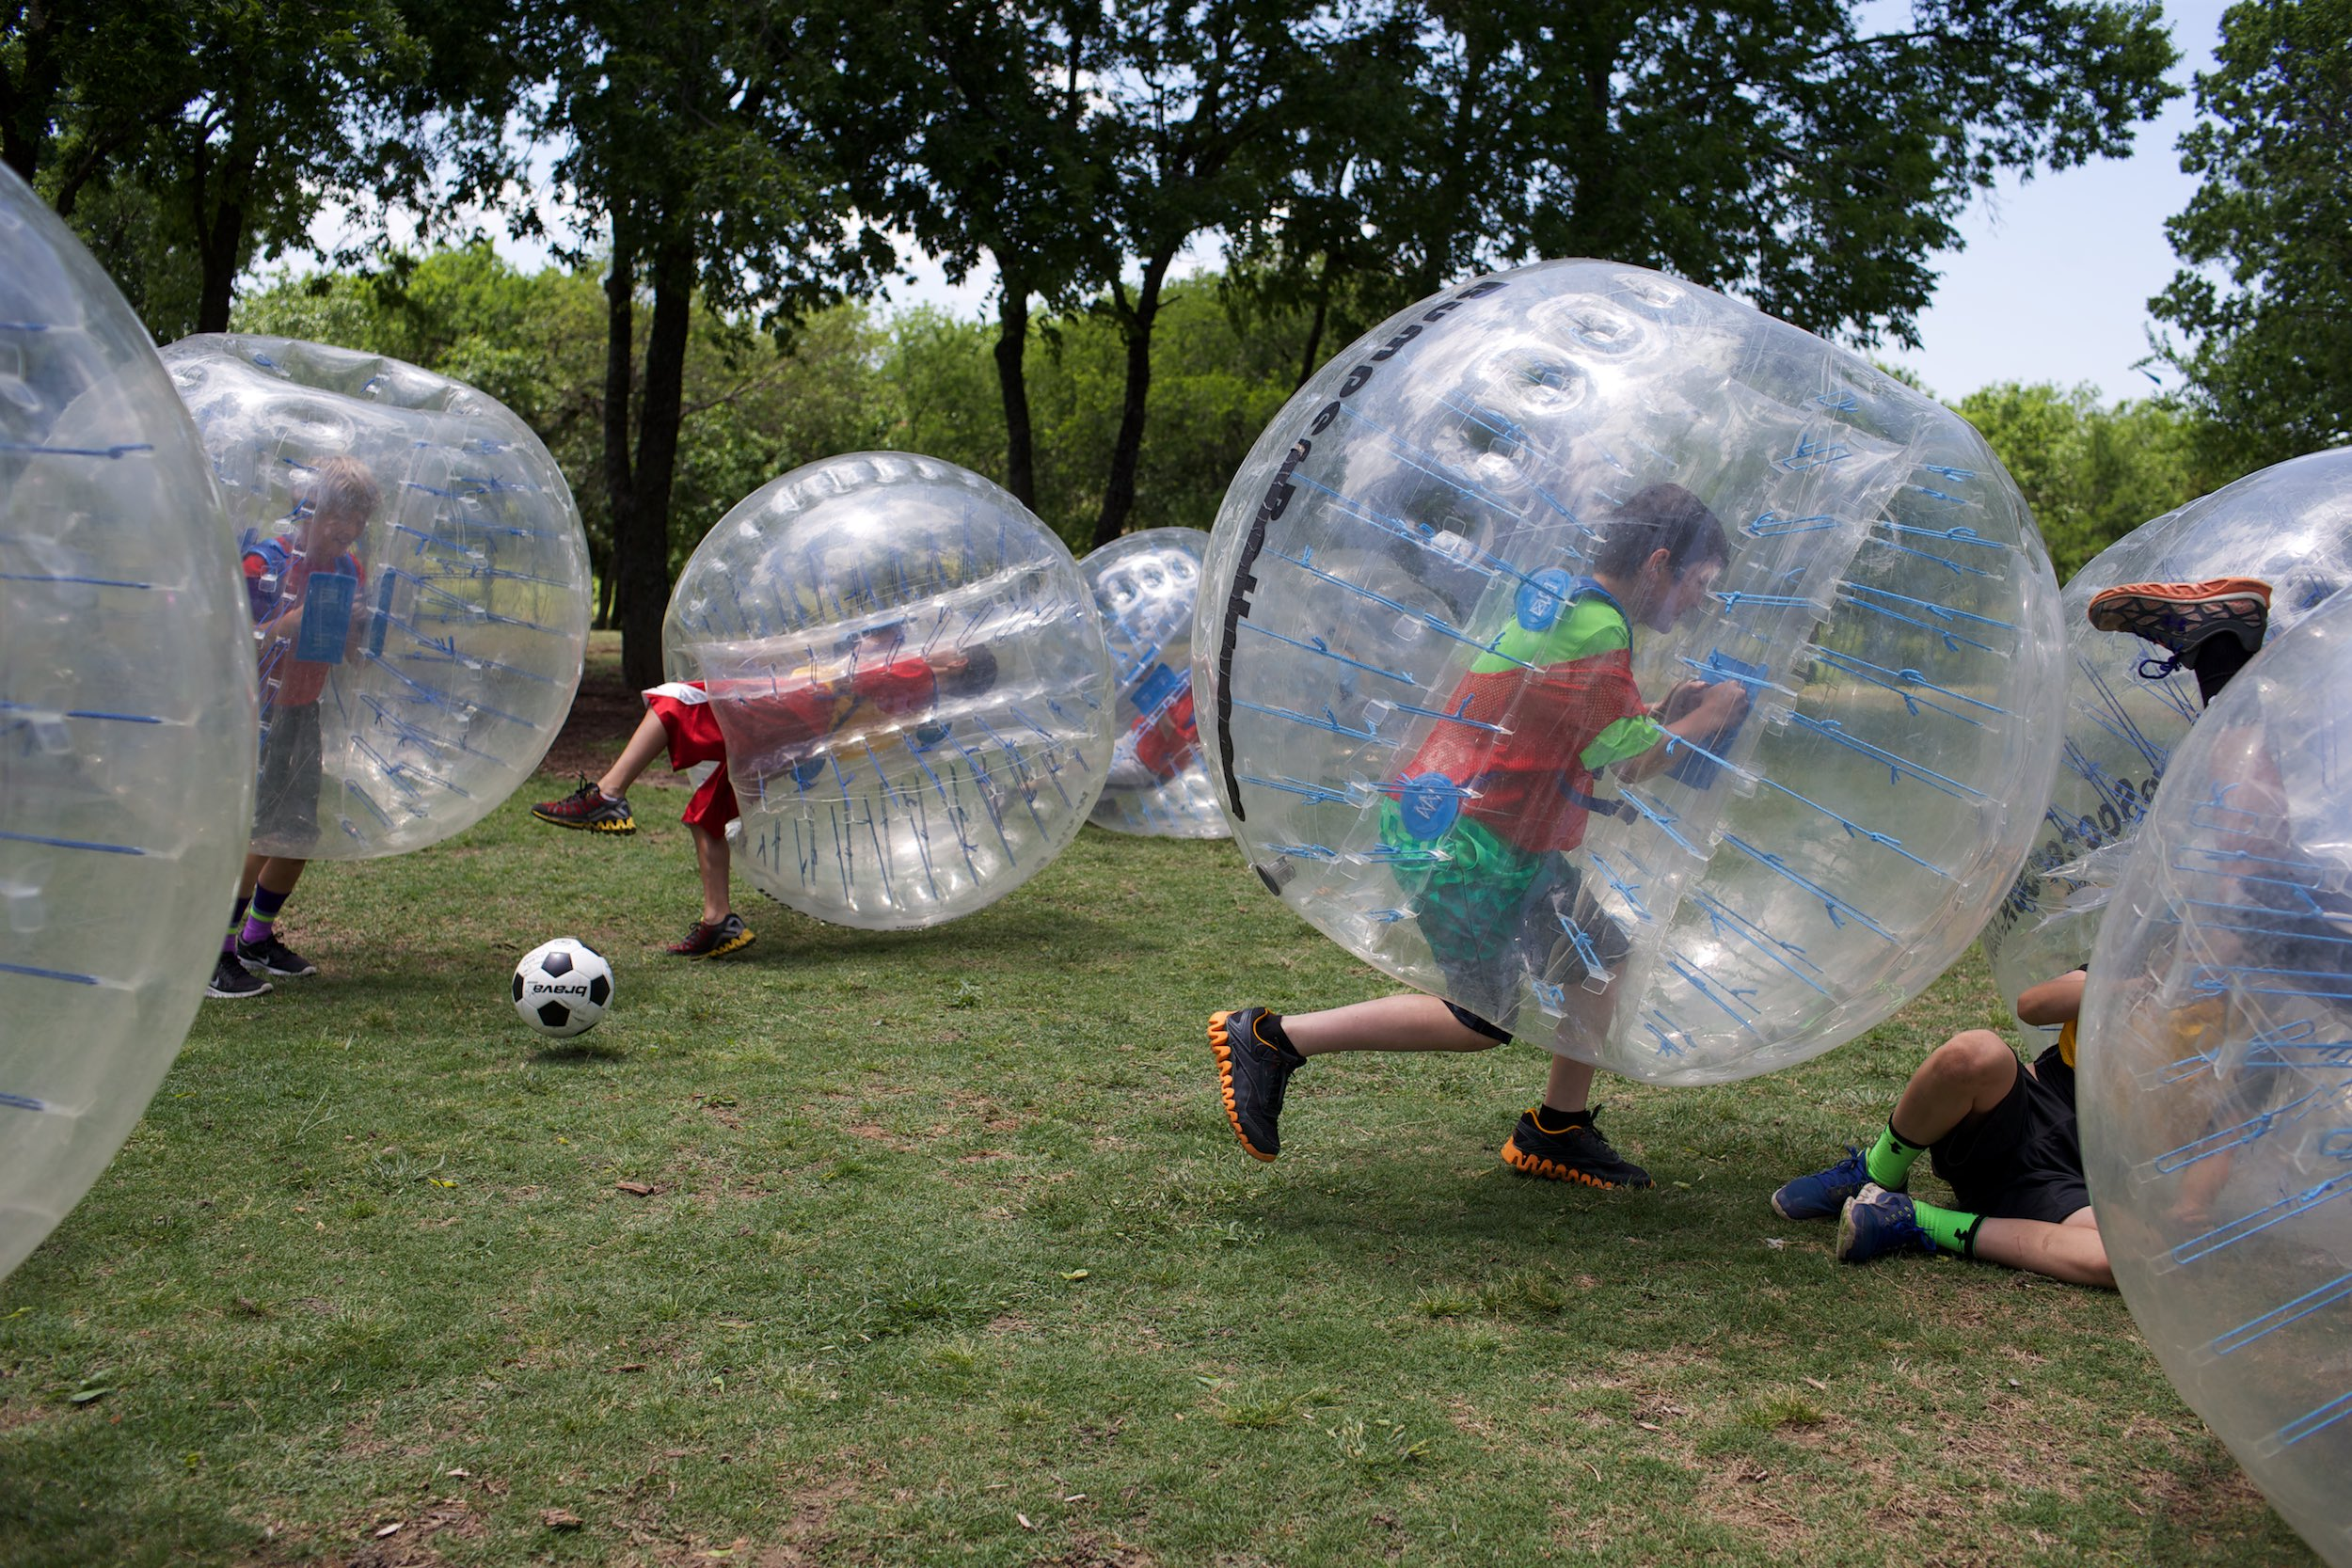 Thanks to the creation of bubble soccer, this is how much fun a 10-year-old's birthday party can be. © Sol Neelman